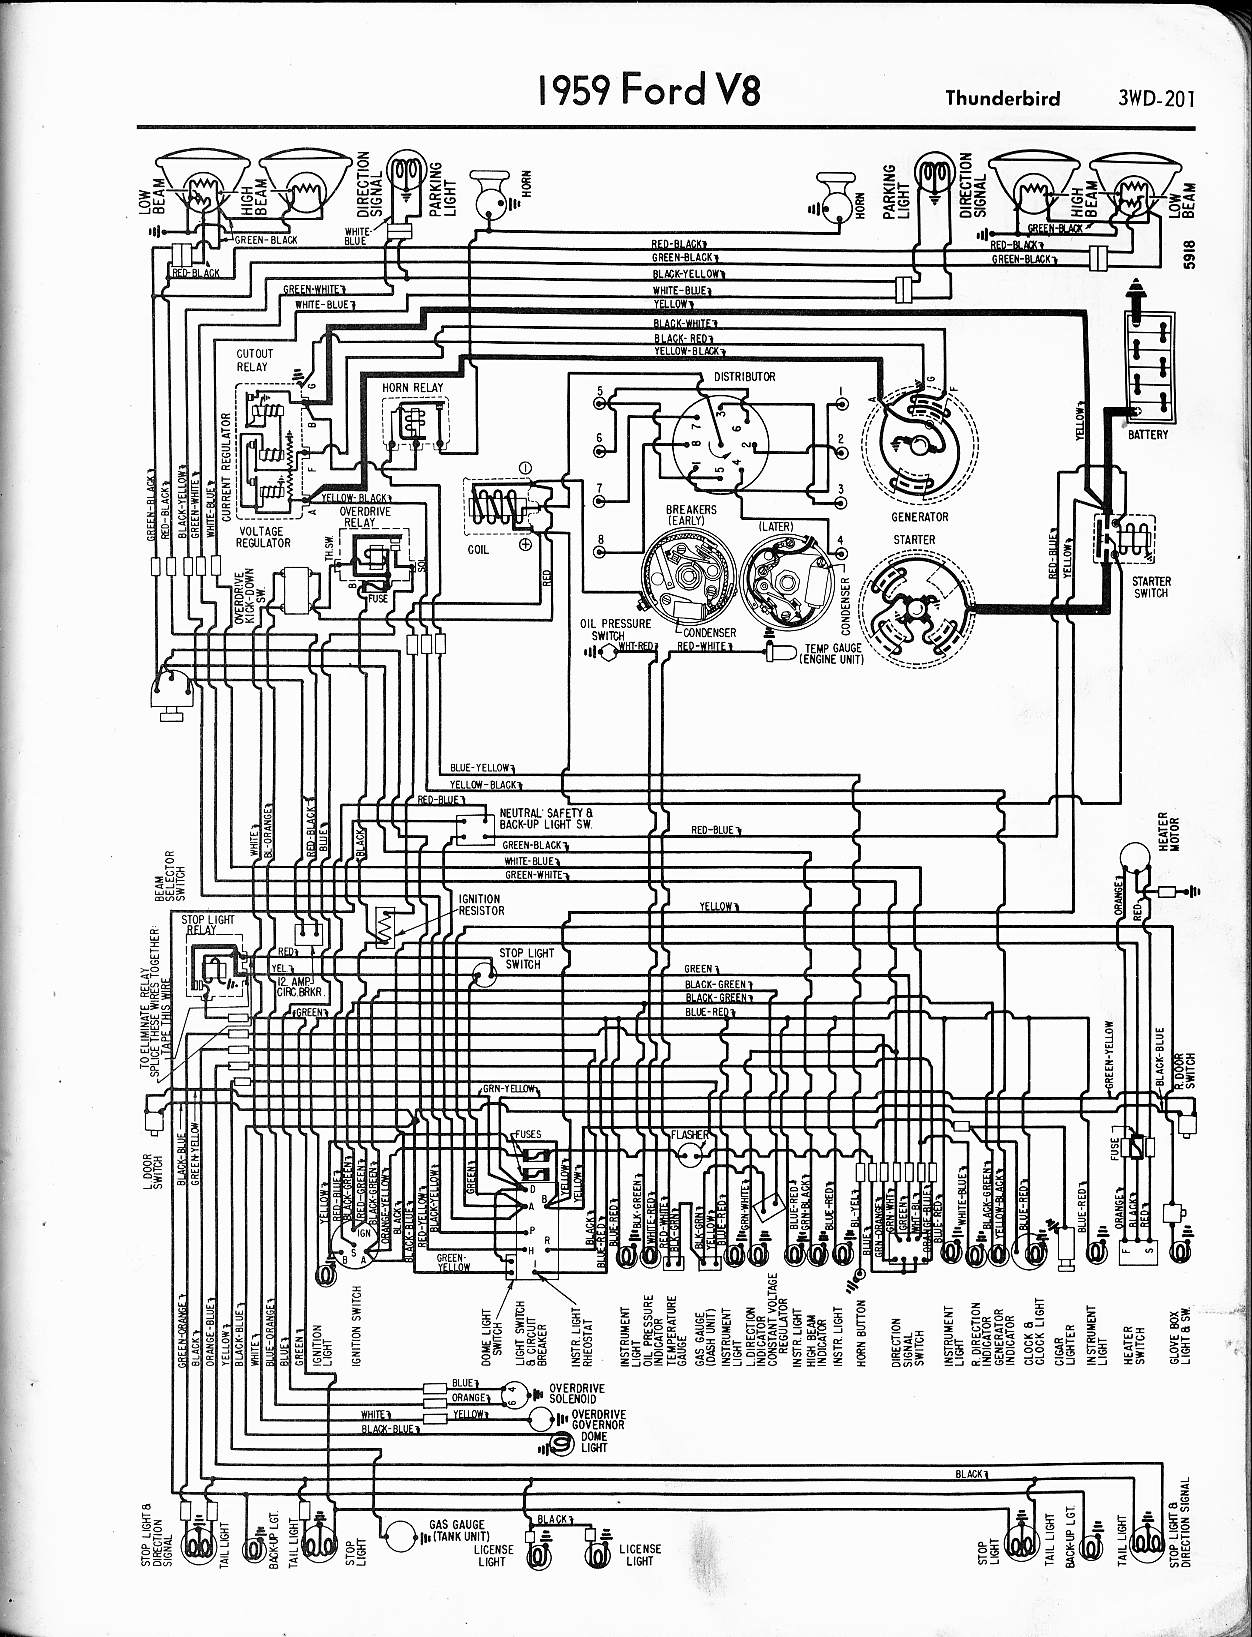 57 65 ford wiring diagramsWiring Diagram 1959 Ford 500 Get Free Image About Wiring Diagram #4